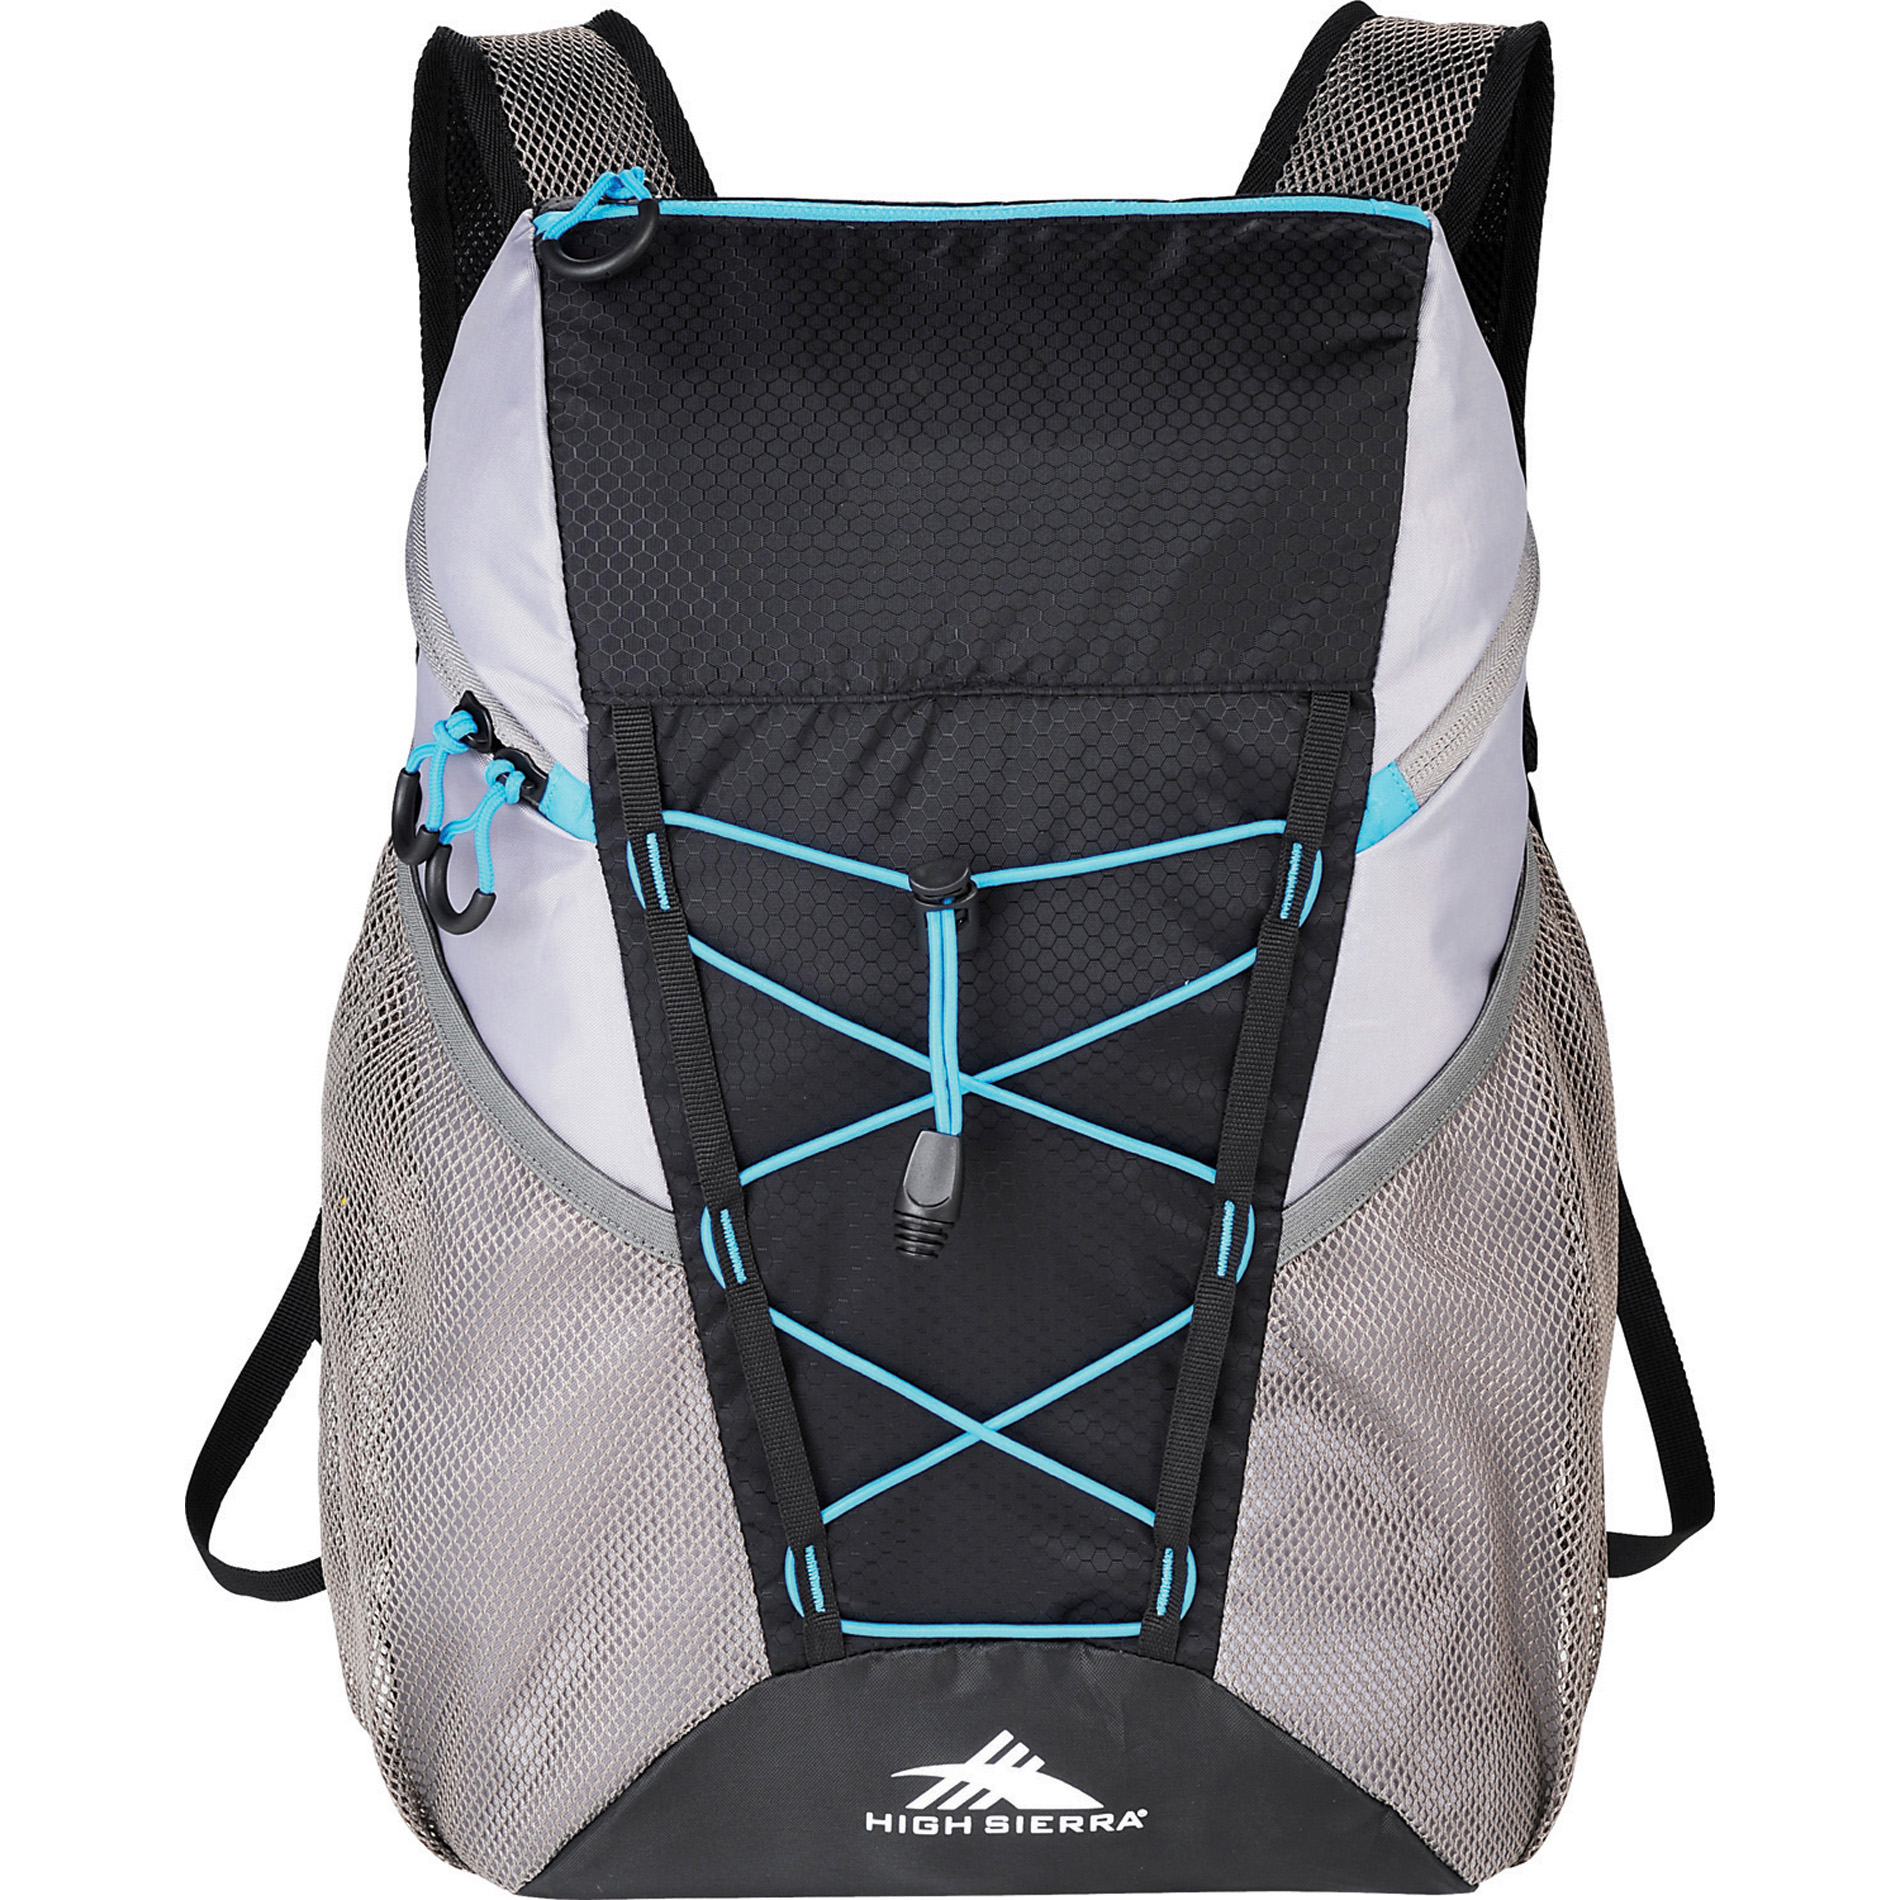 High Sierra 8052-23 - Pack-n-Go 18L Backpack